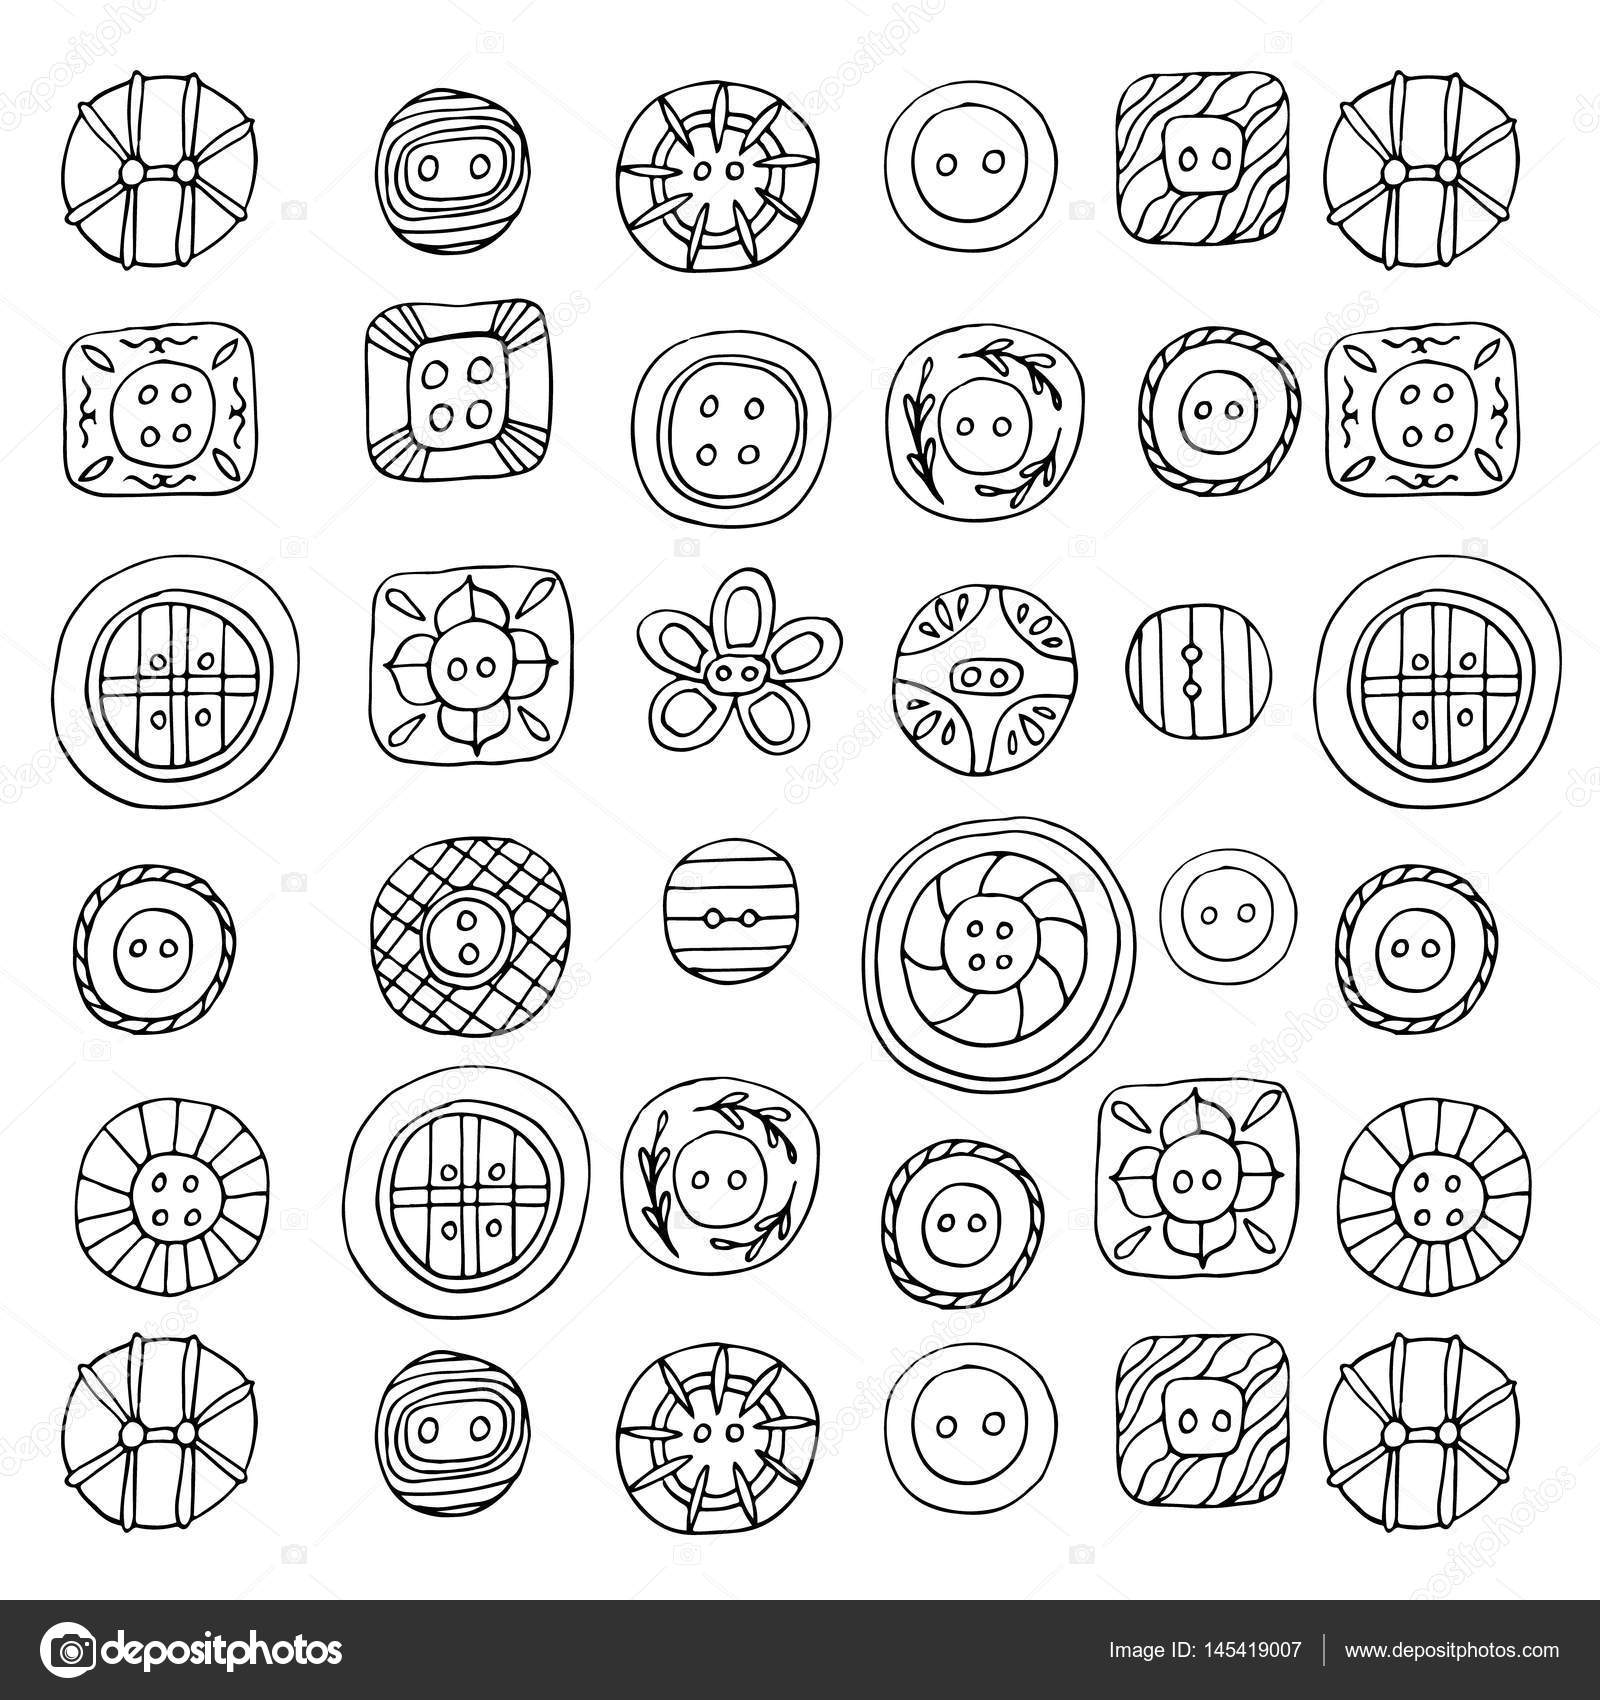 Thread And Buttons Coloring Page Sketch Templates furthermore 4407 also Finding Dory Coloring besides Tangled Before Ever After Coloring Pages additionally Pink Baby Printable Coloring Page. on friends coloring sheet